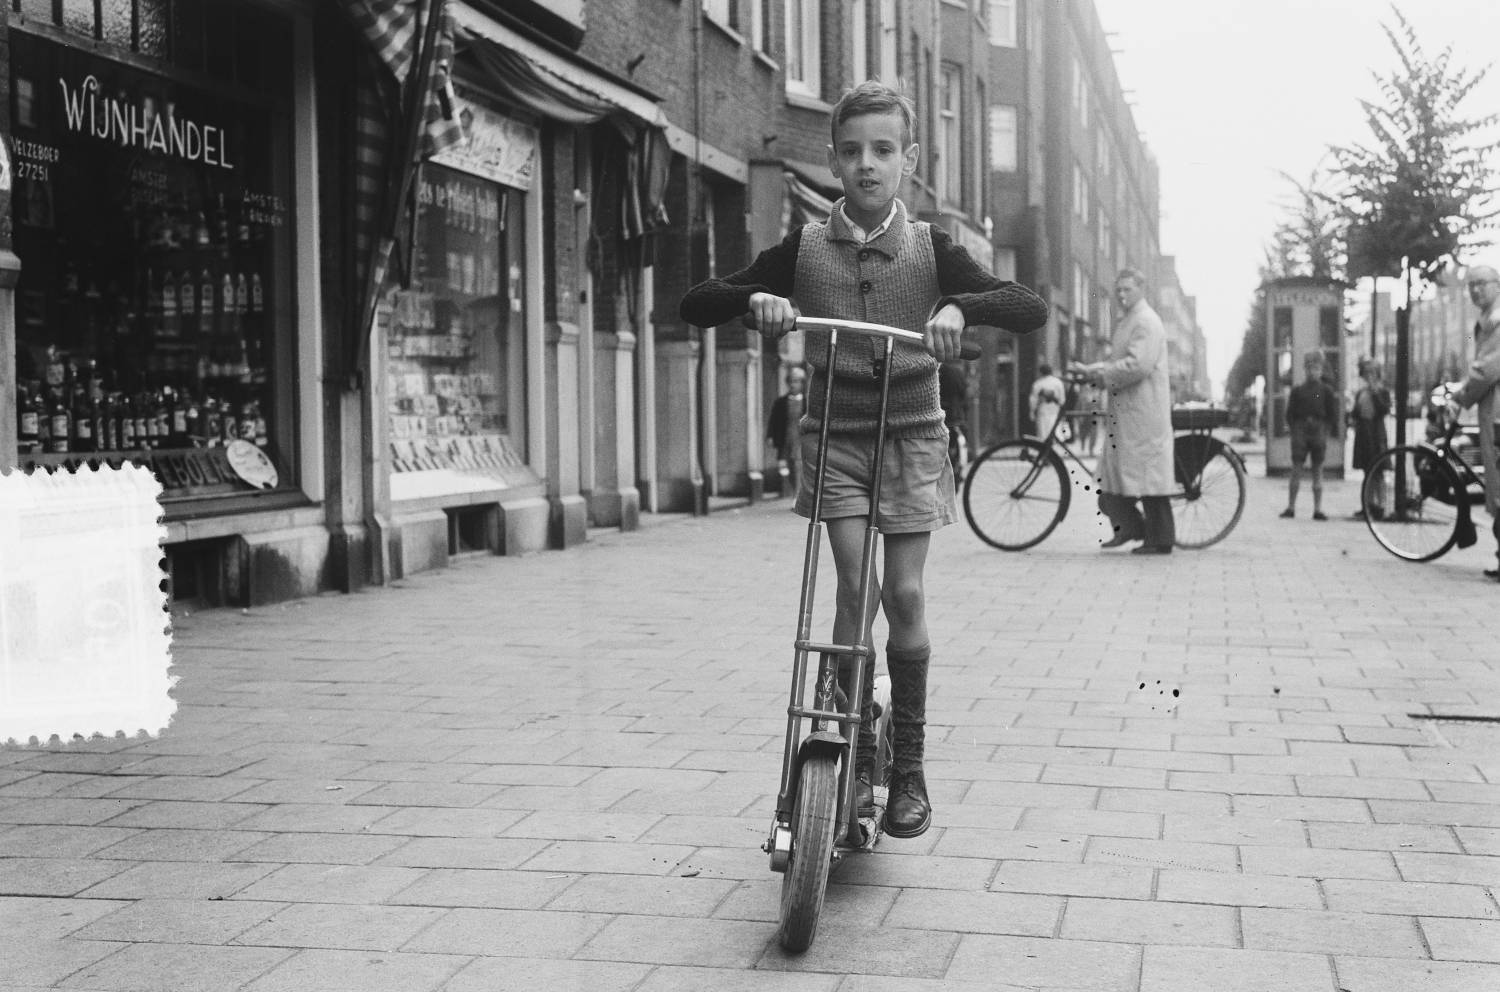 A young boy rides his Autoped through the streets of Amsterdam.